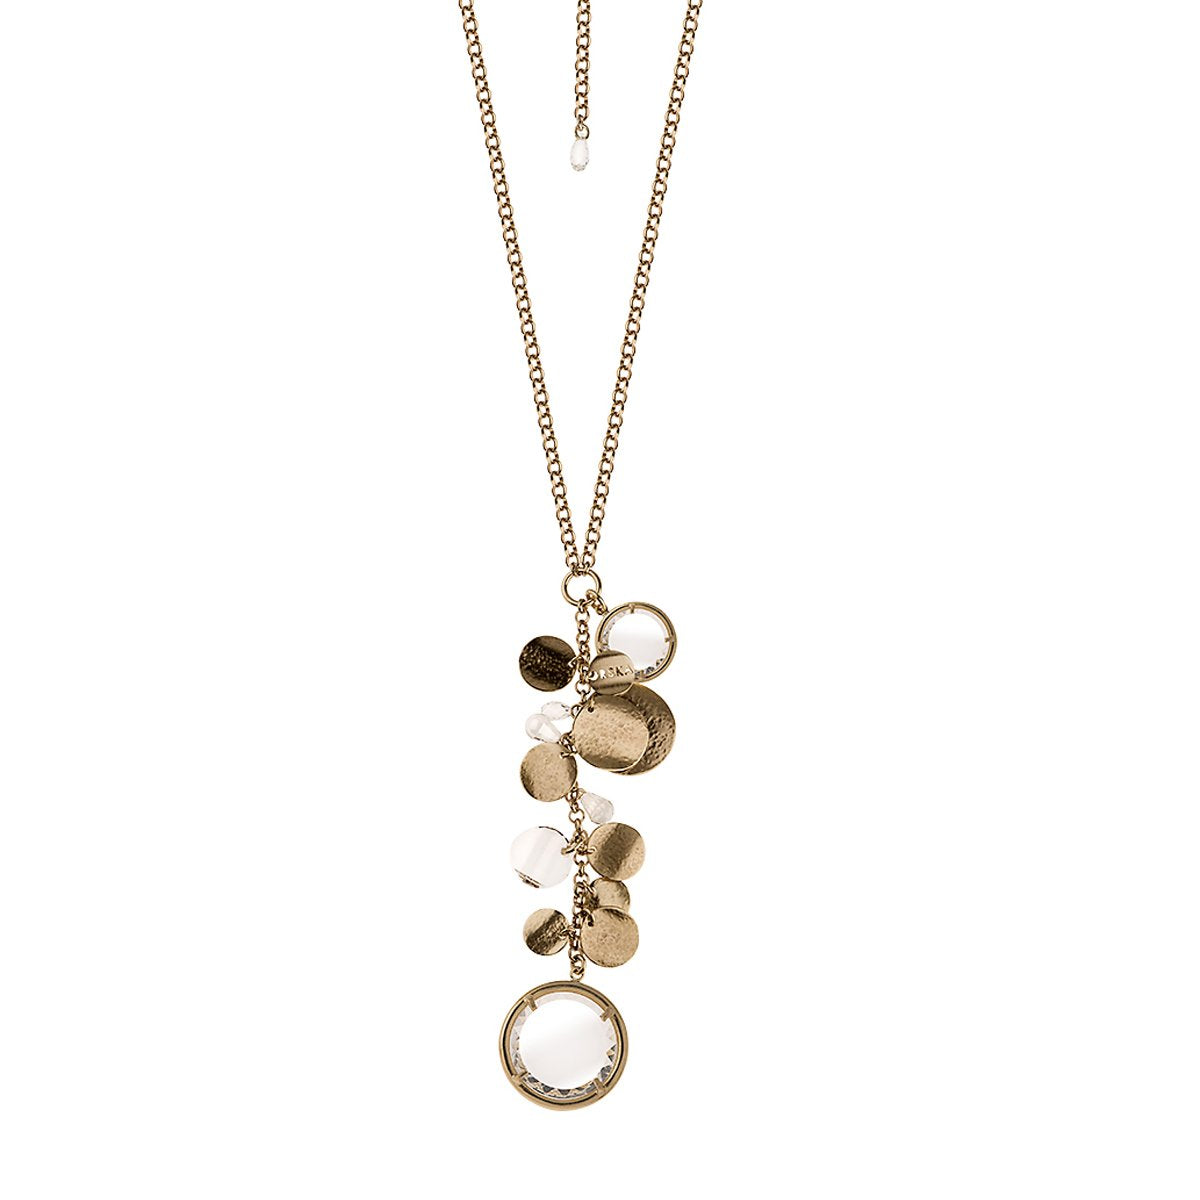 Necklace from Rundo collection - RN72-5